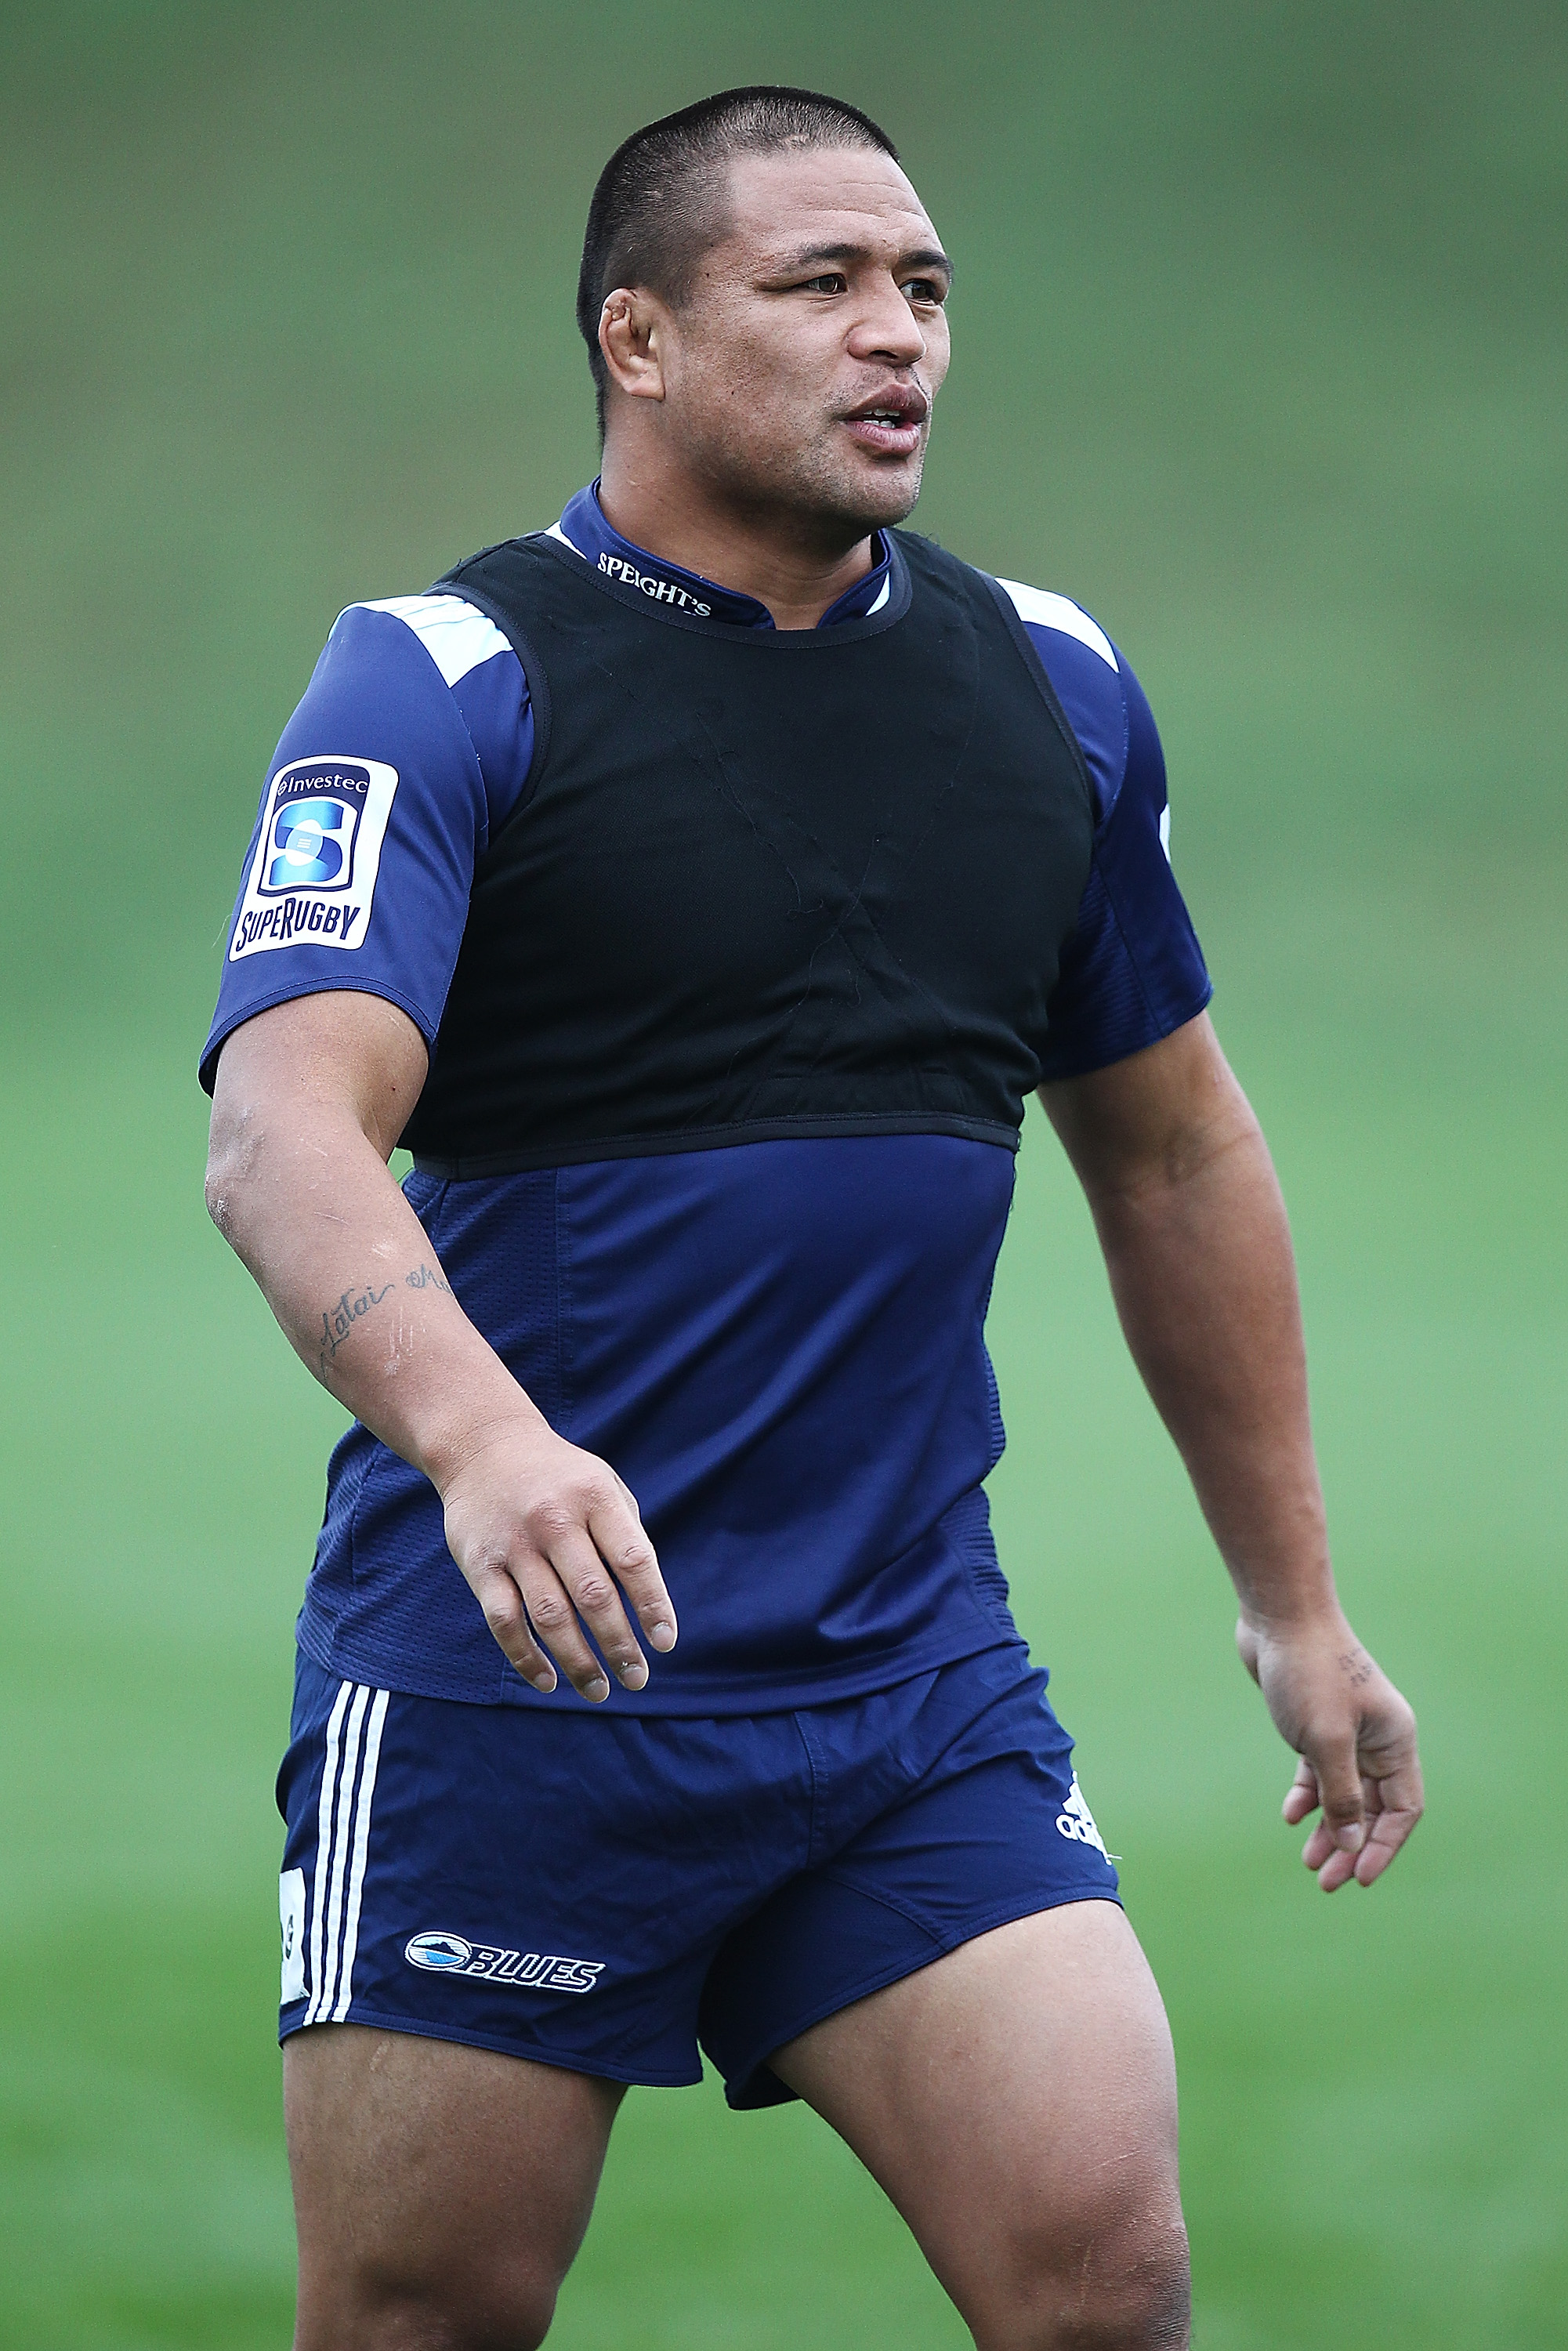 AUCKLAND, NEW ZEALAND - JUNE 09:  Keven Mealamu during an Auckland Blues Super Rugby training session at Unitec on June 9, 2011 in Auckland, New Zealand.  (Photo by Hannah Johnston/Getty Images)